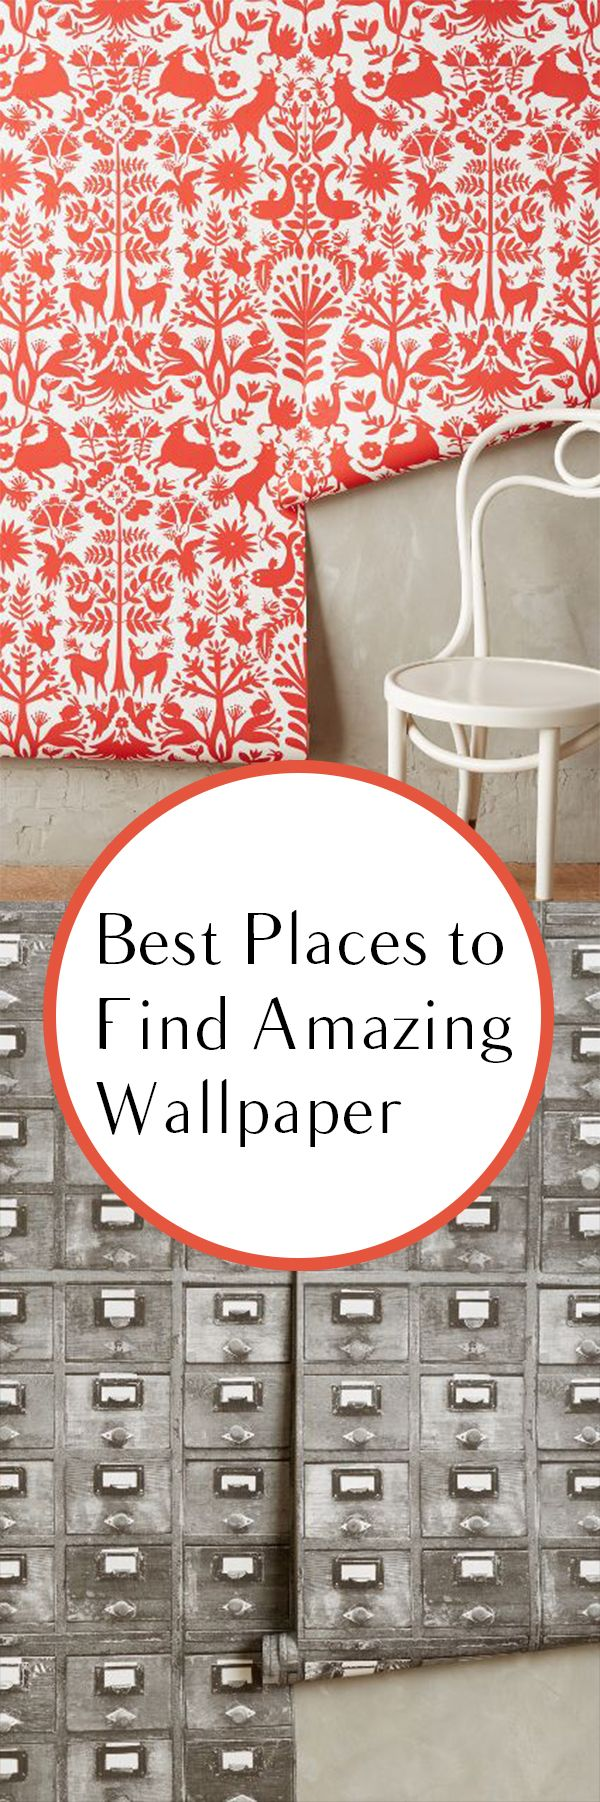 Amazing-Places-to-Buy-Great-ideas-for-the-most-unique-and-trendy-for-your-home-wallpaper-wp3003136